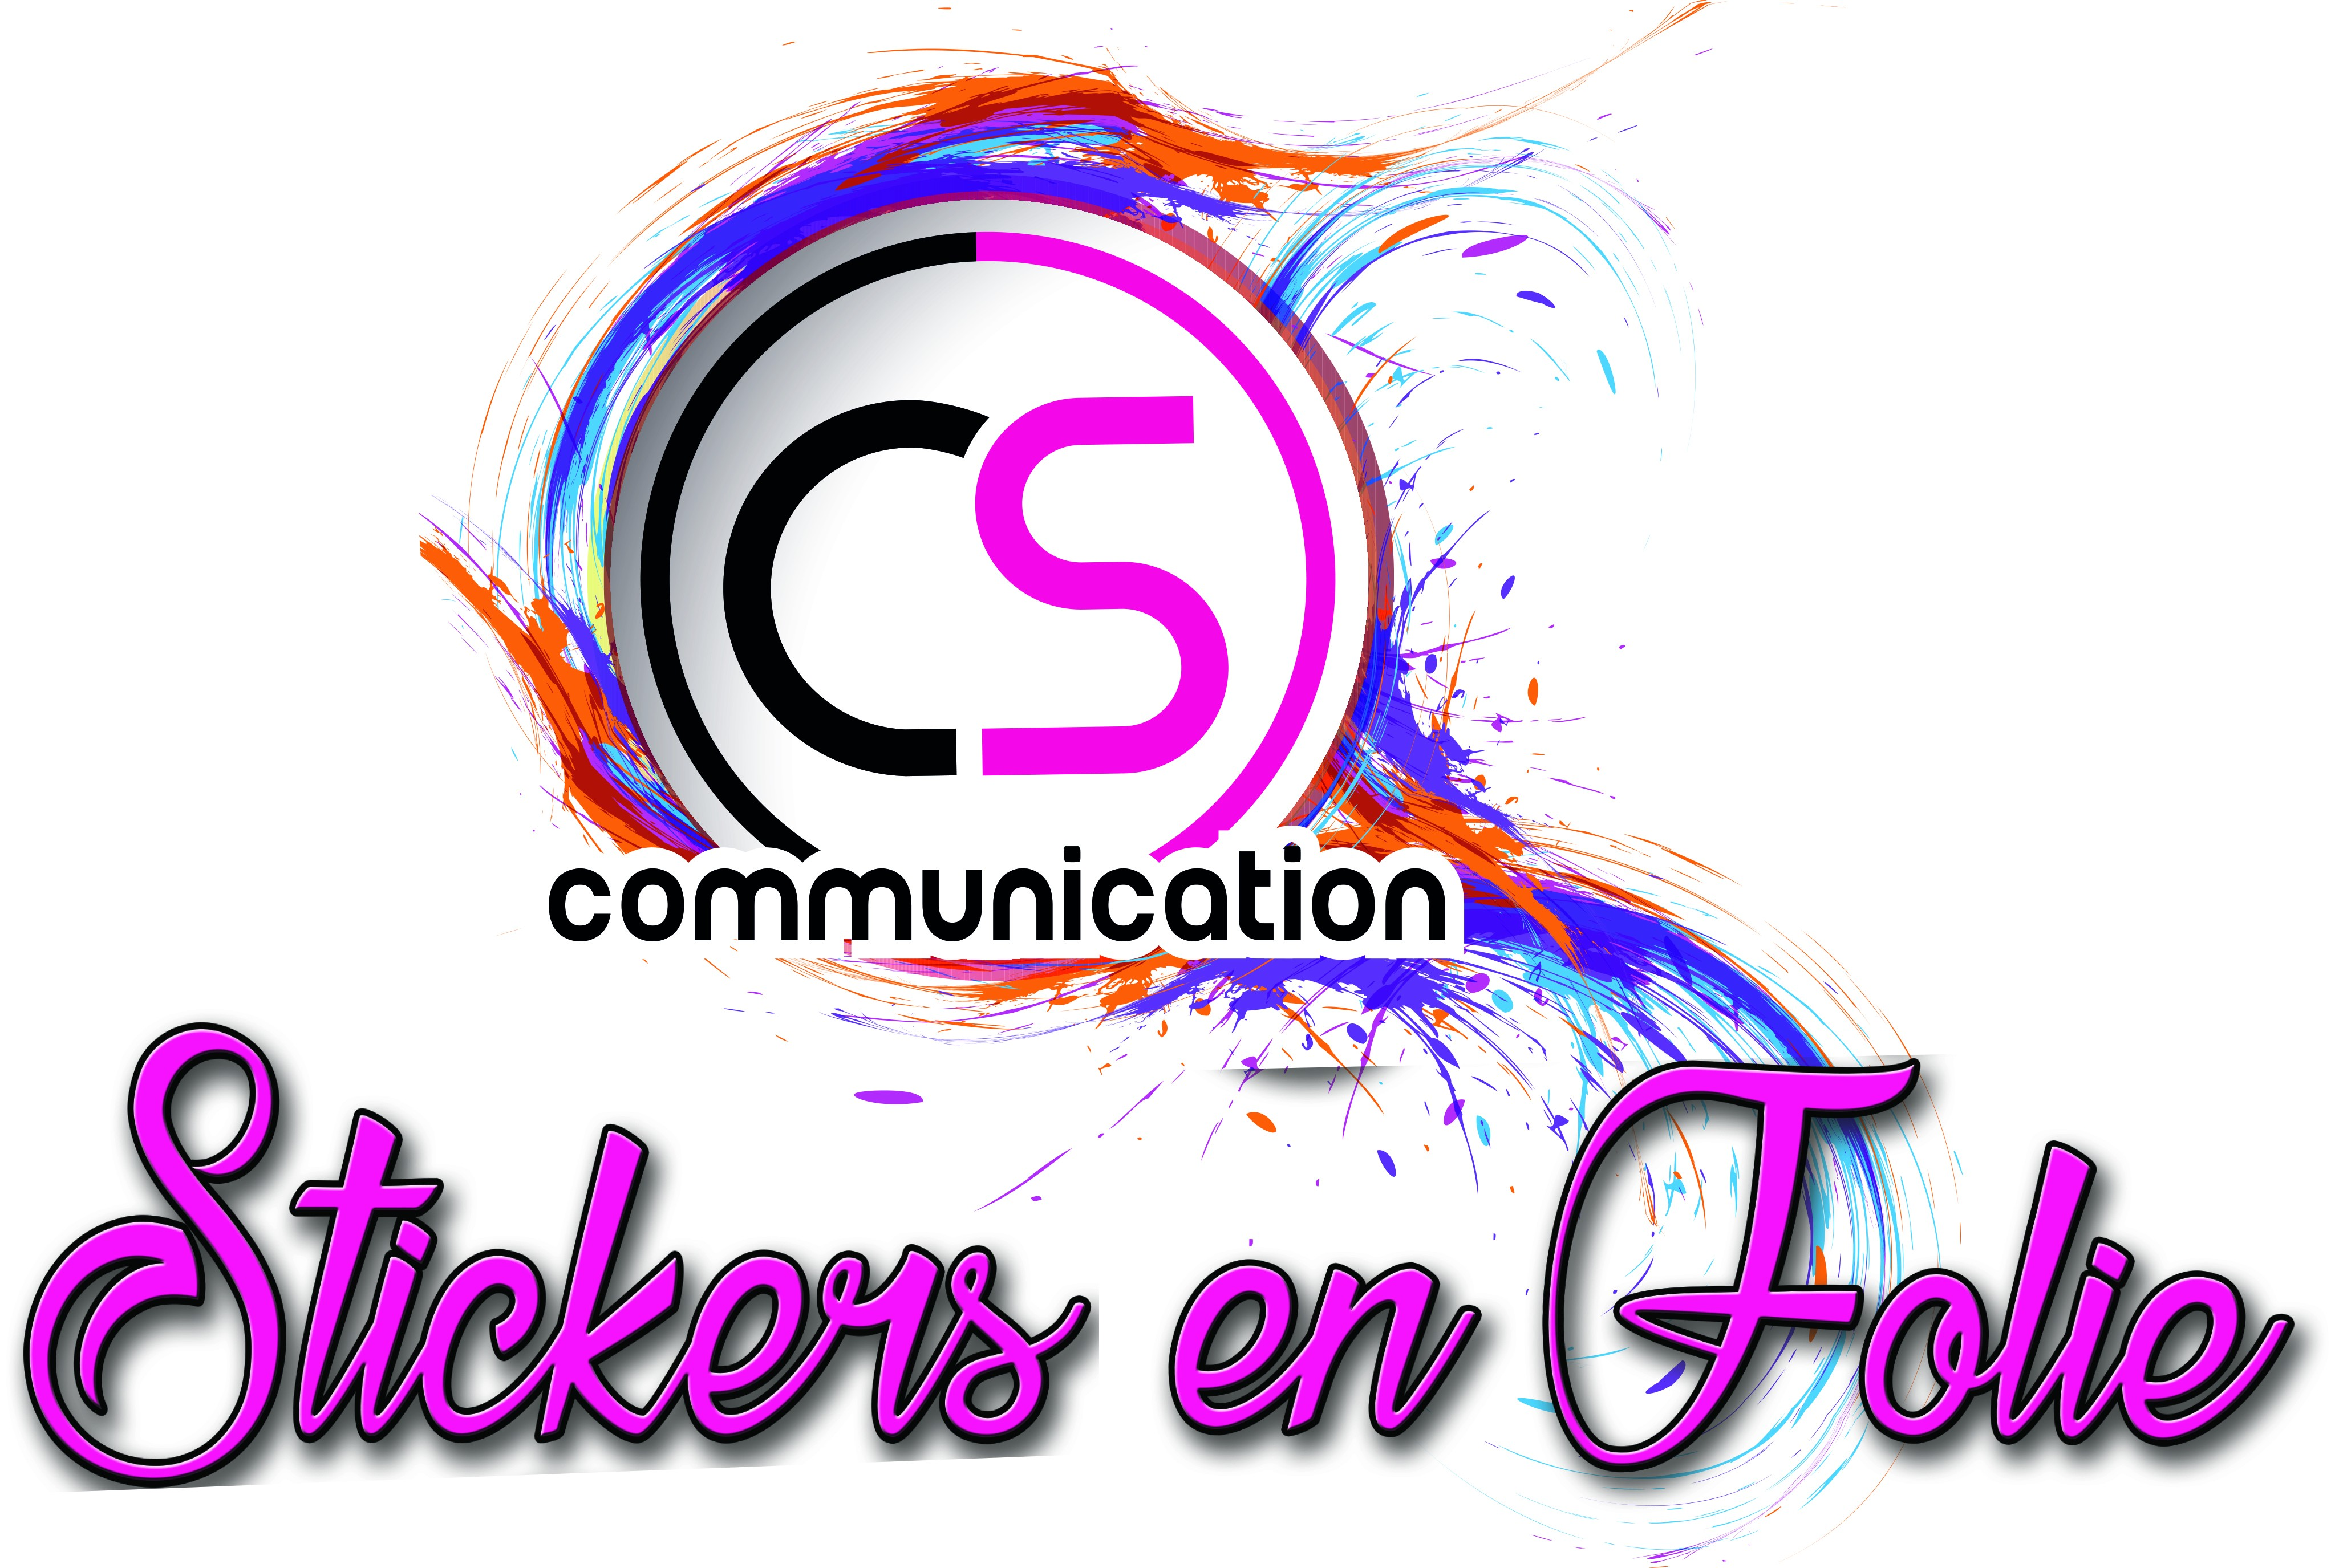 Stickers en folie  by CS Communication